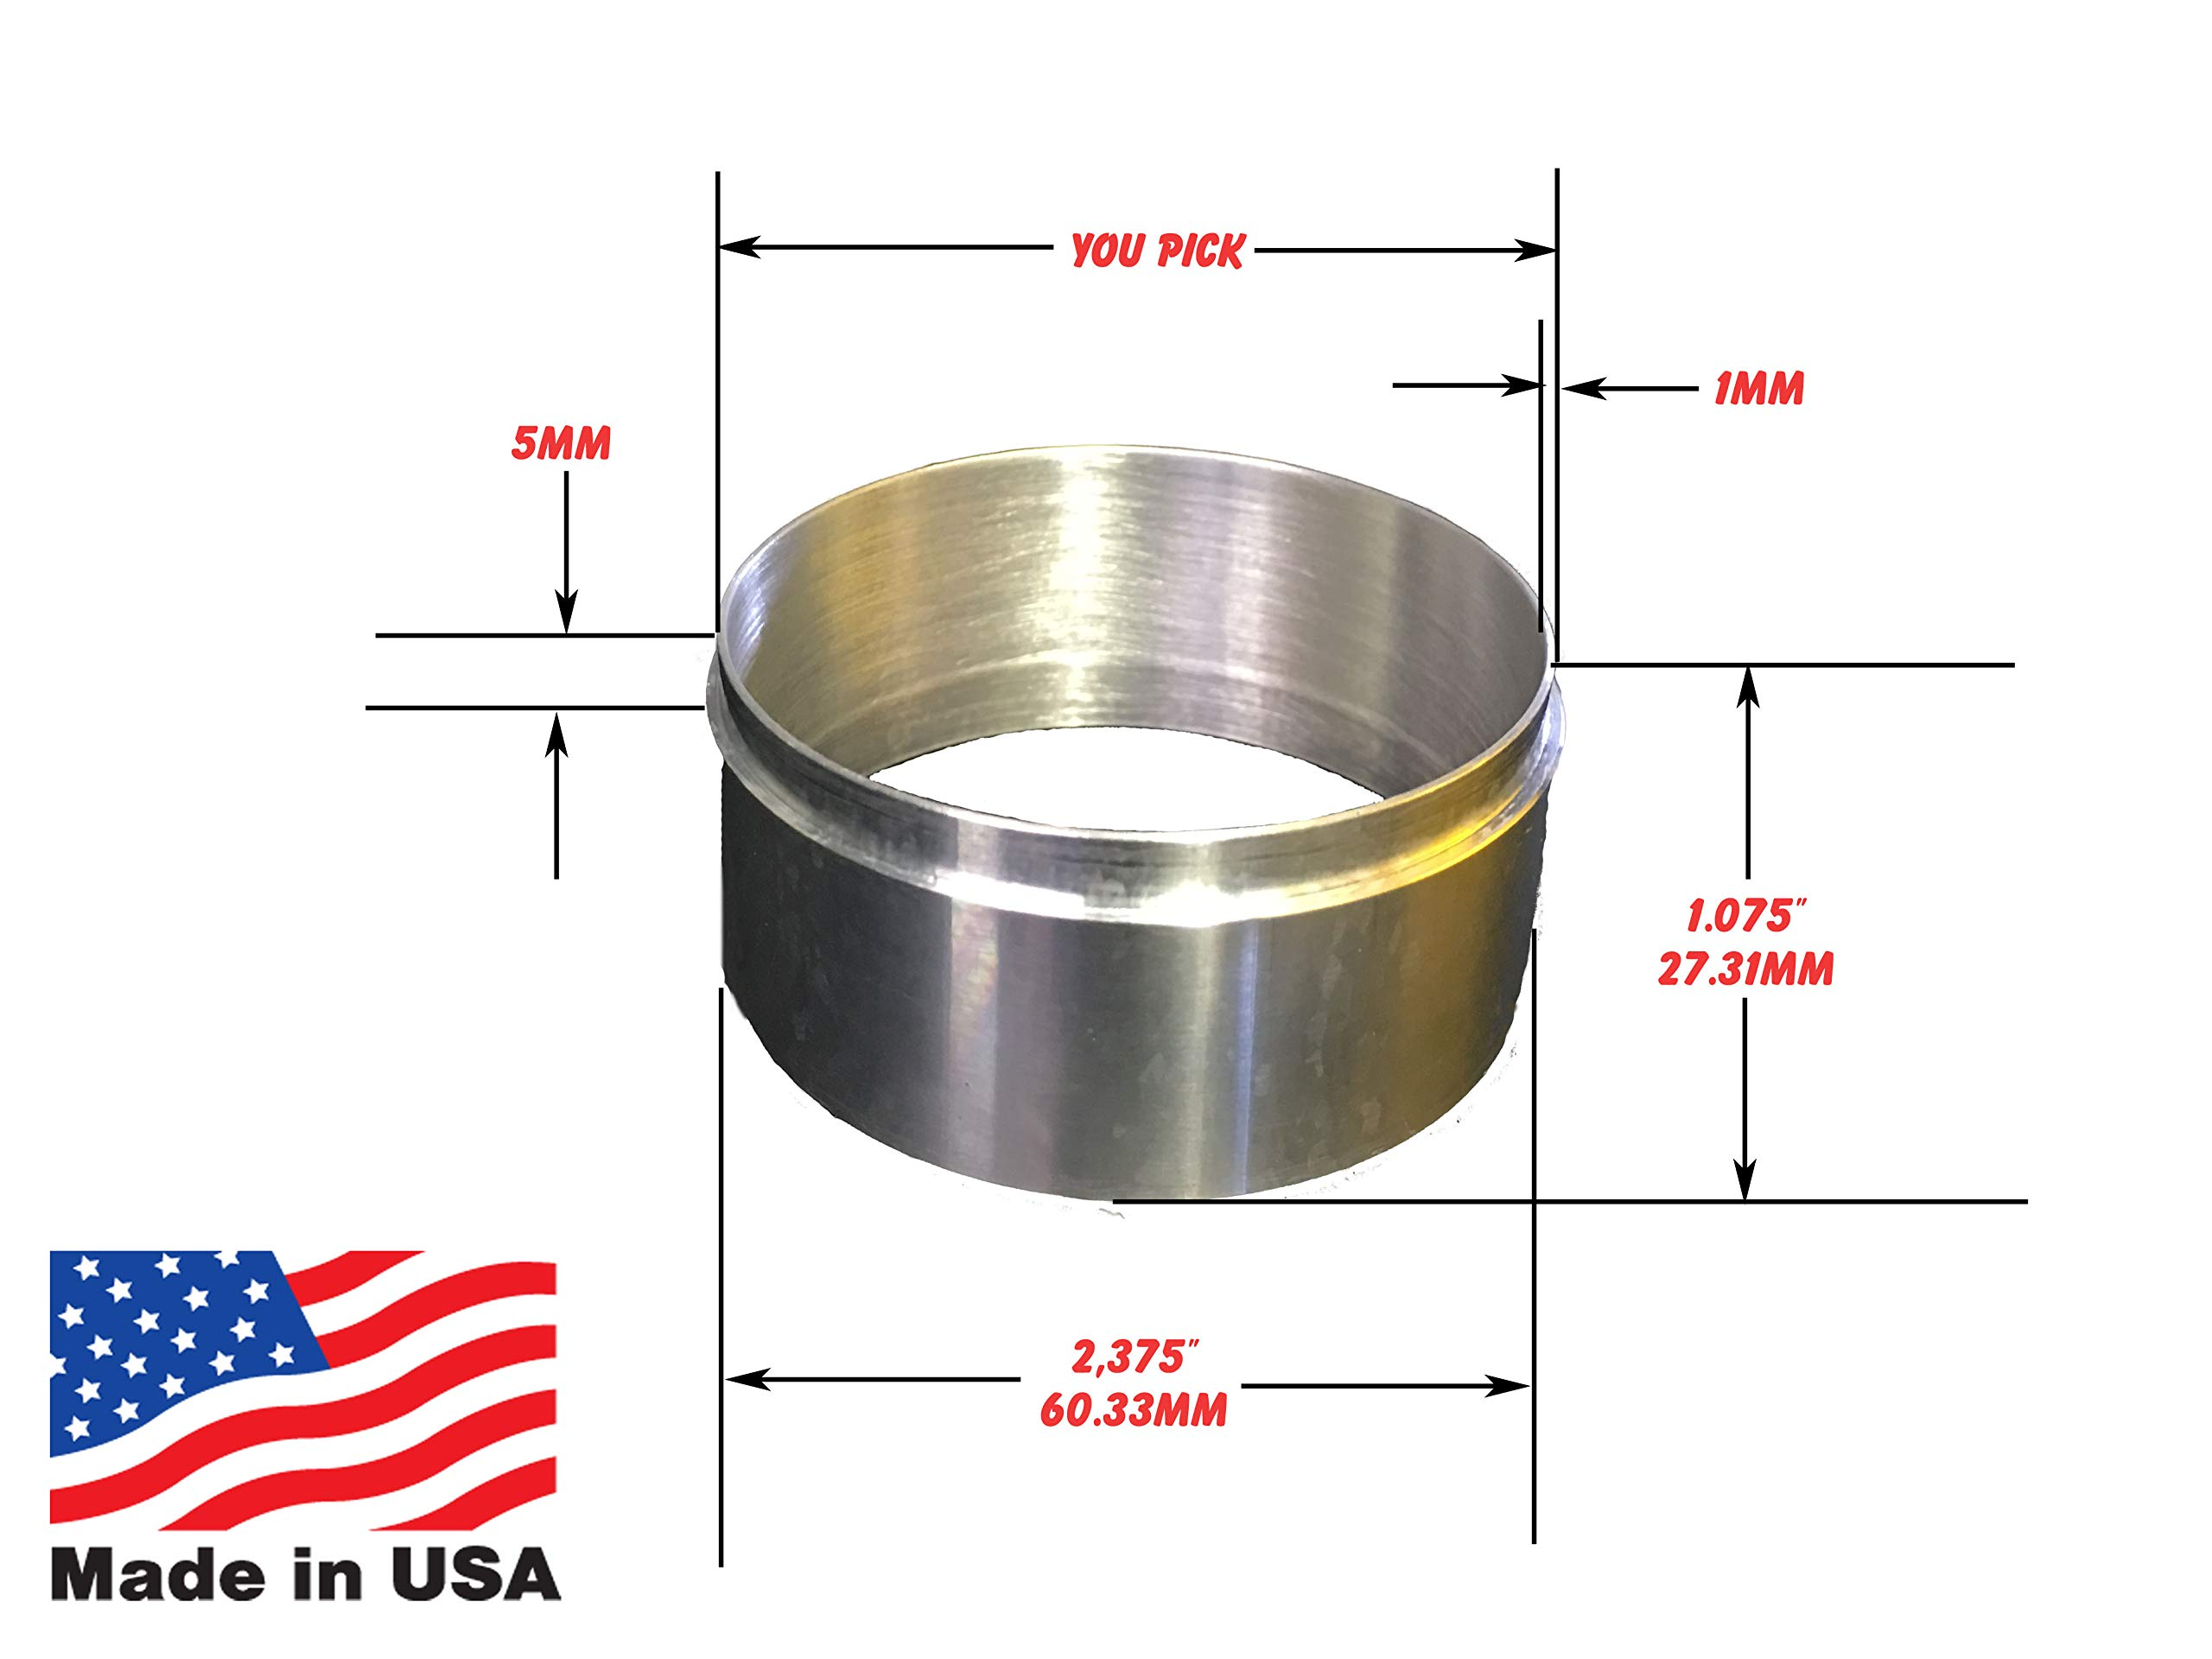 Coffee Ground Dosage Ring Stainless Steel Dosing Funnels Made in USA (57mmds-SS) by Coffee Complements